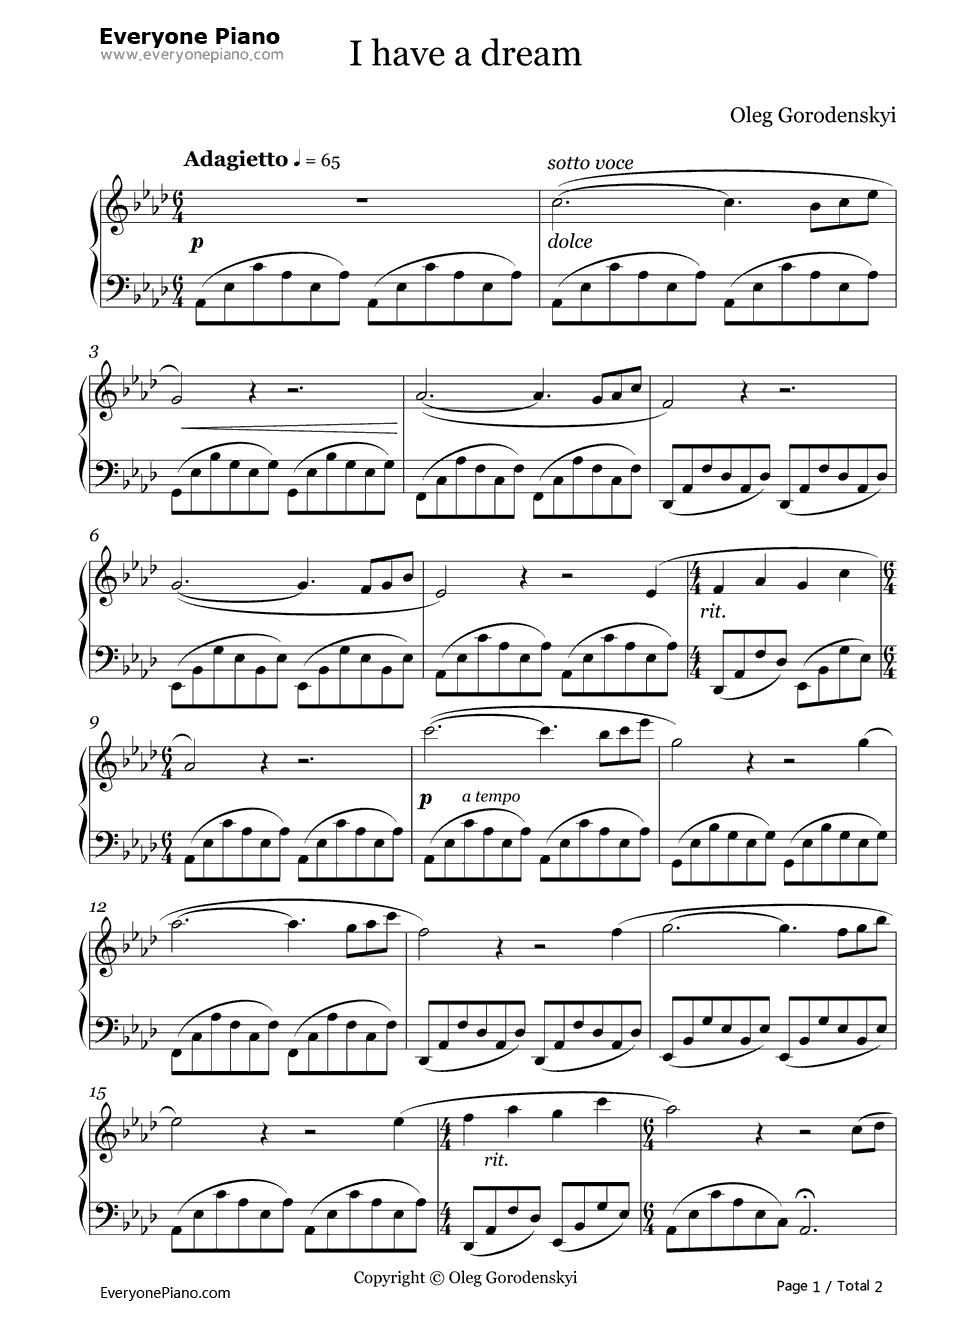 I have a dream oleg gorodenskyi stave preview 1 free piano sheet listen now print sheet i have a dream oleg gorodenskyi stave preview 1 hexwebz Image collections